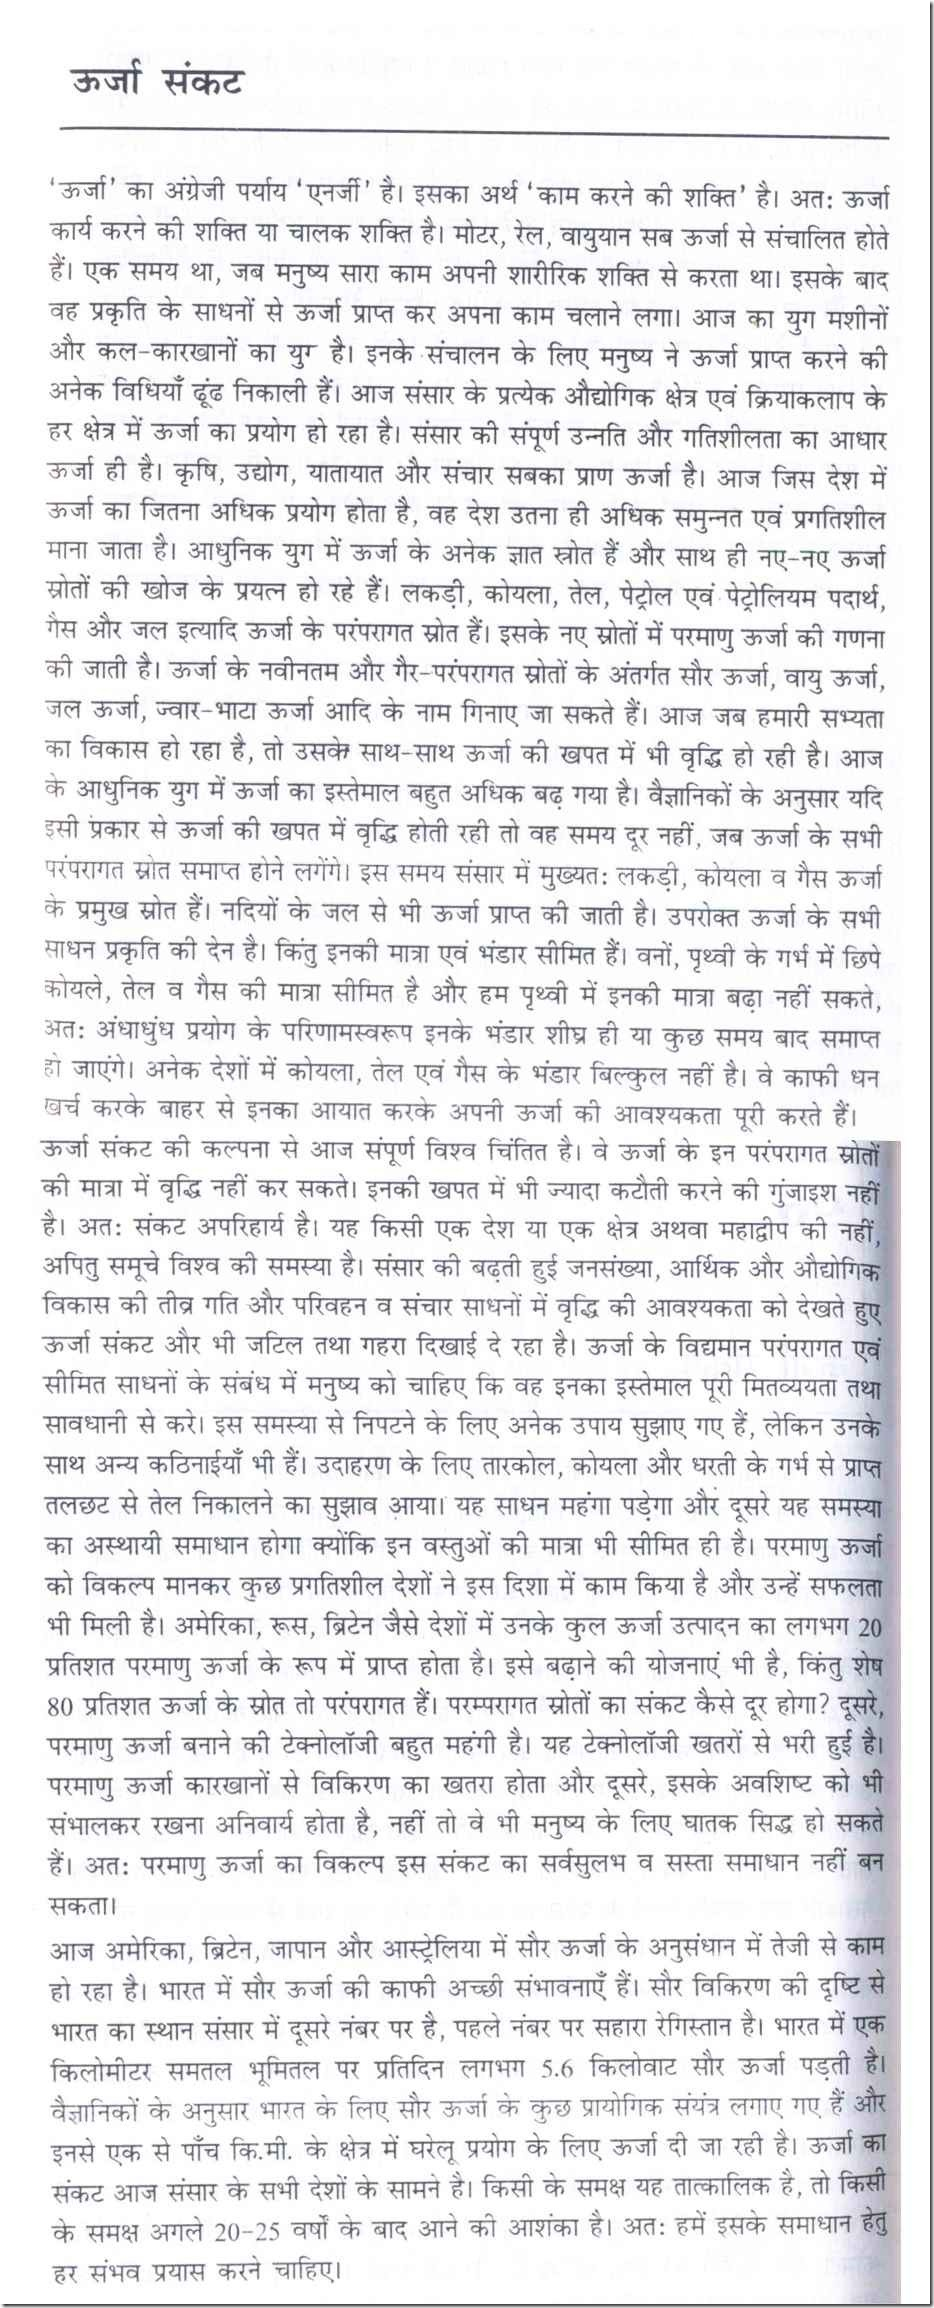 010 Essay On Electricity In Hindi 3102259154 Energy Conservation Sanskrit Imposing Veto Power Youth Problem Language Full